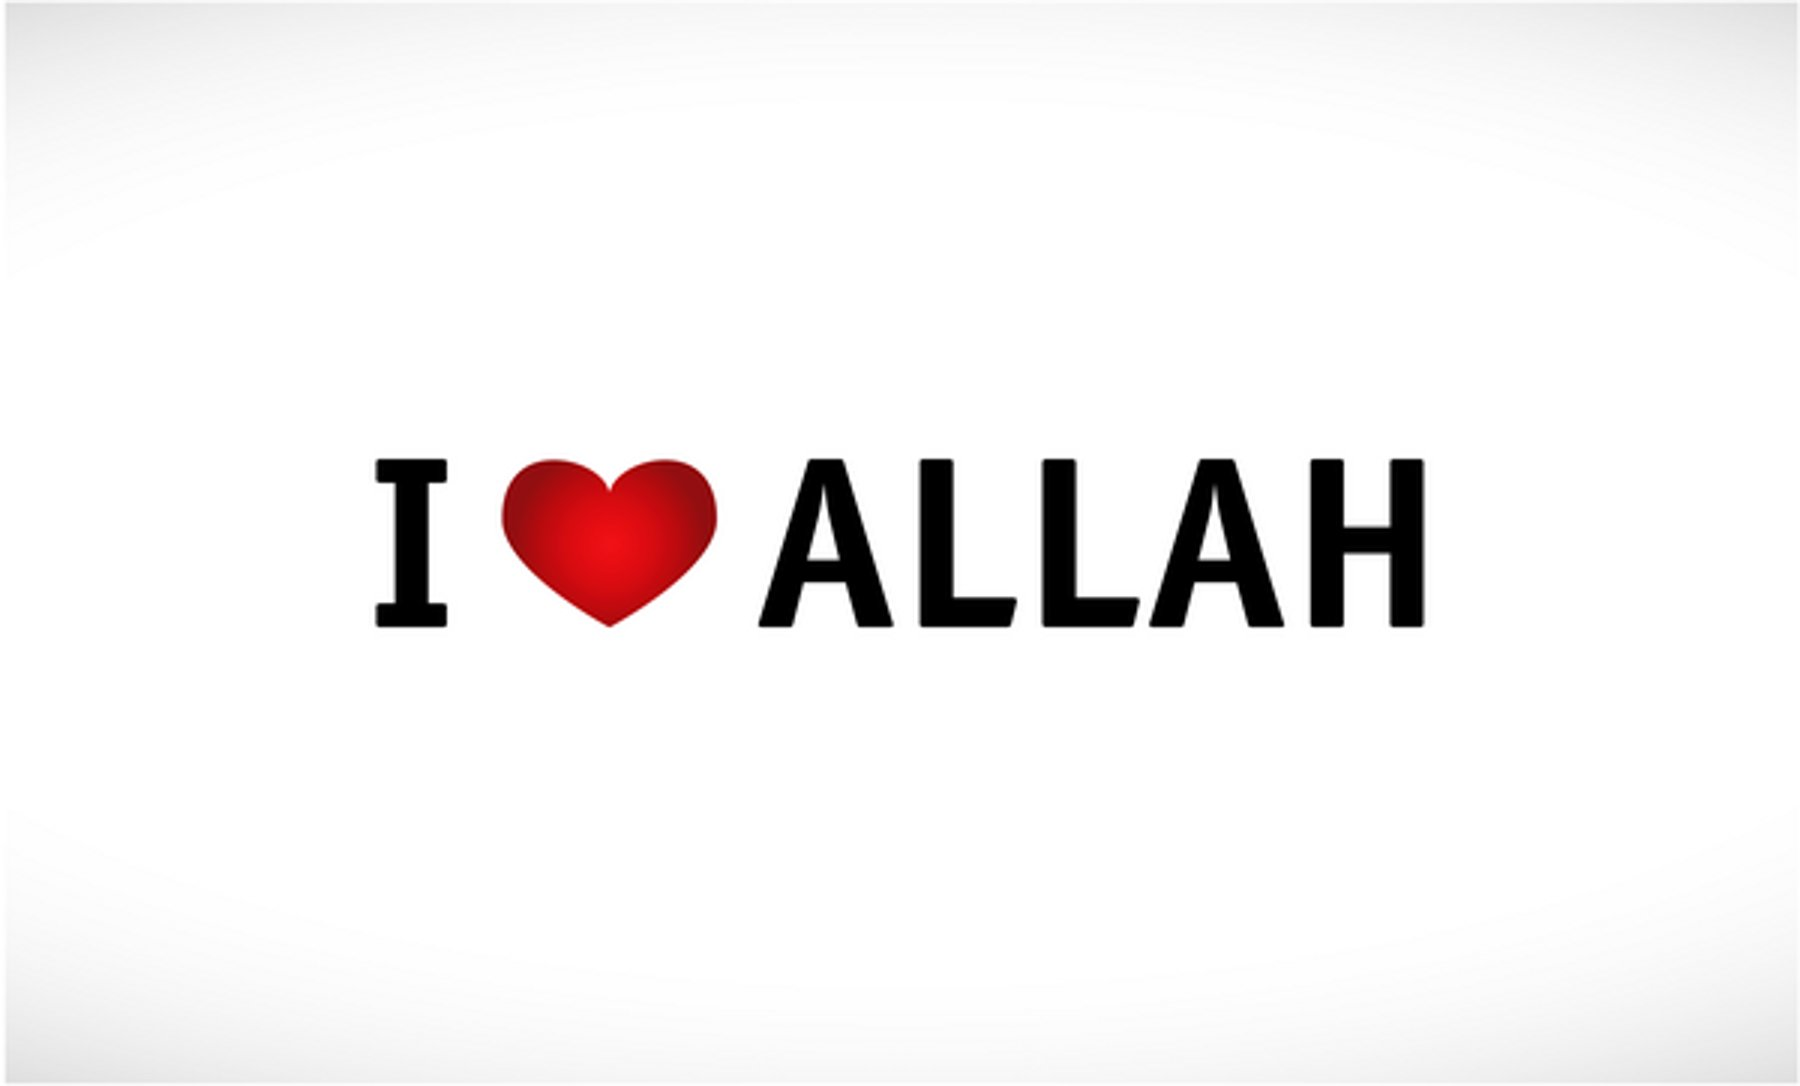 Love Wallpaper Allah : I Love Islam Wallpaper - WallpaperSafari